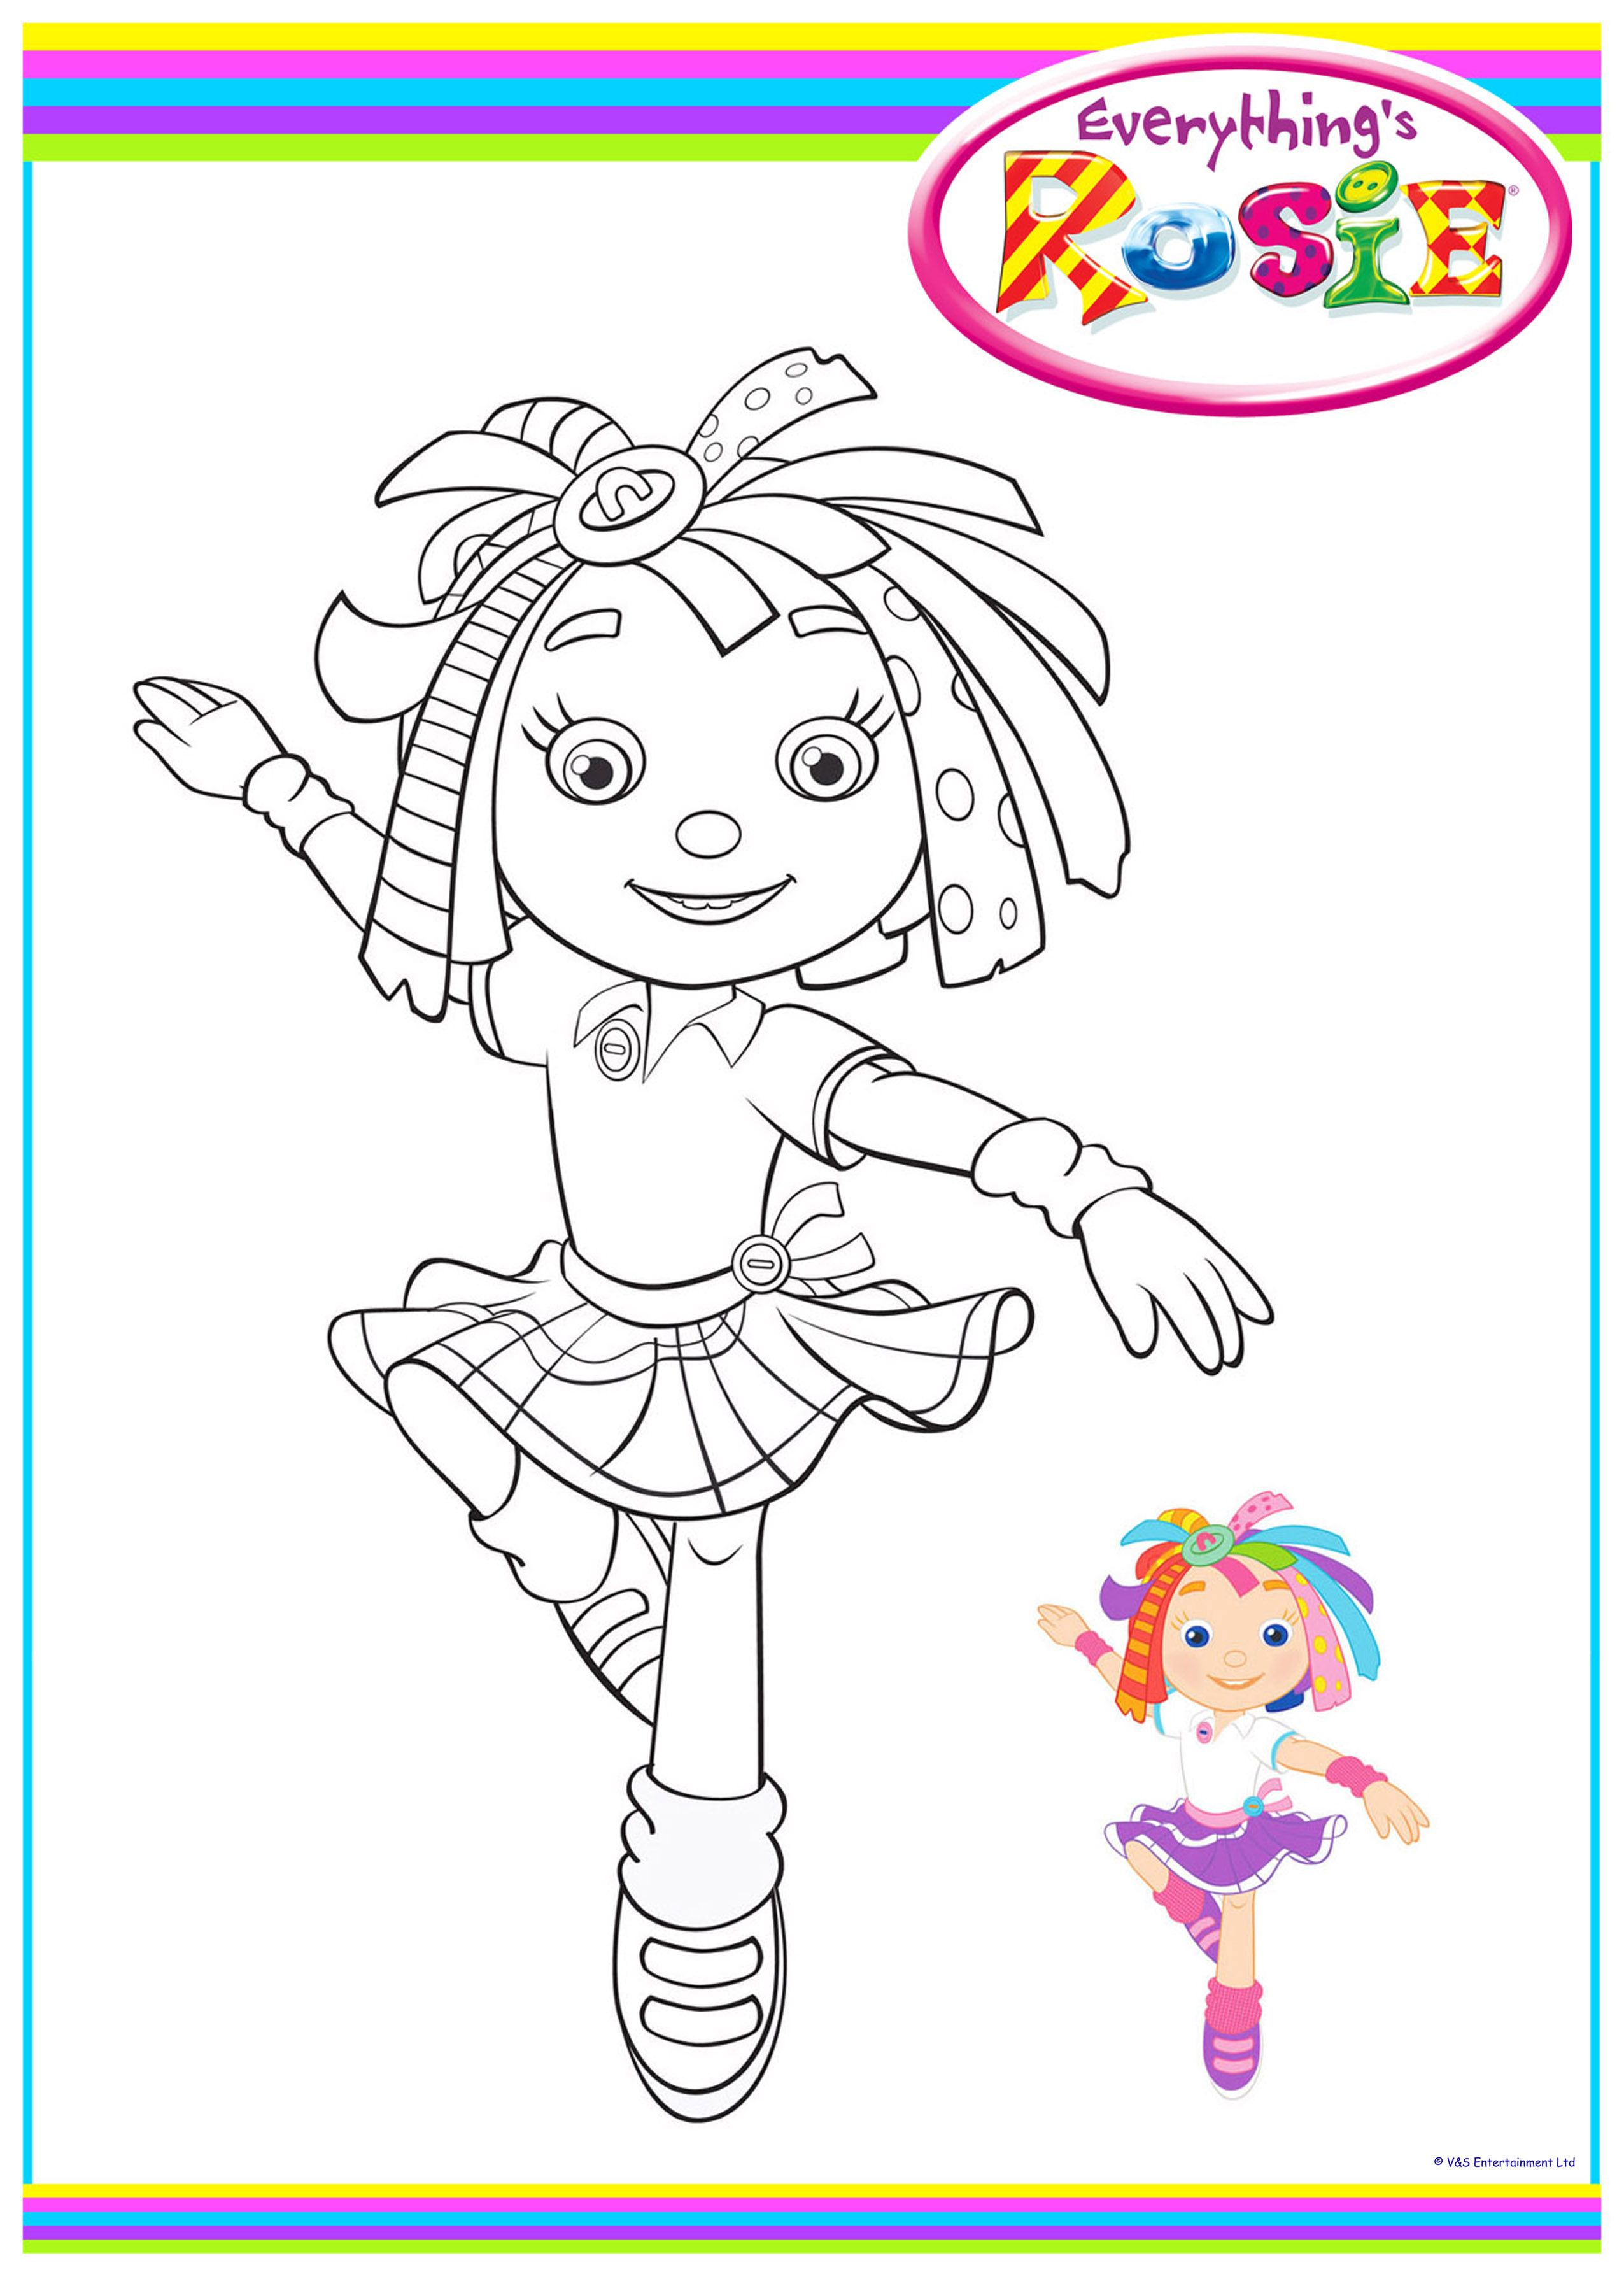 Rosie train coloring - Everything S Rosie Colouring Sheets 1